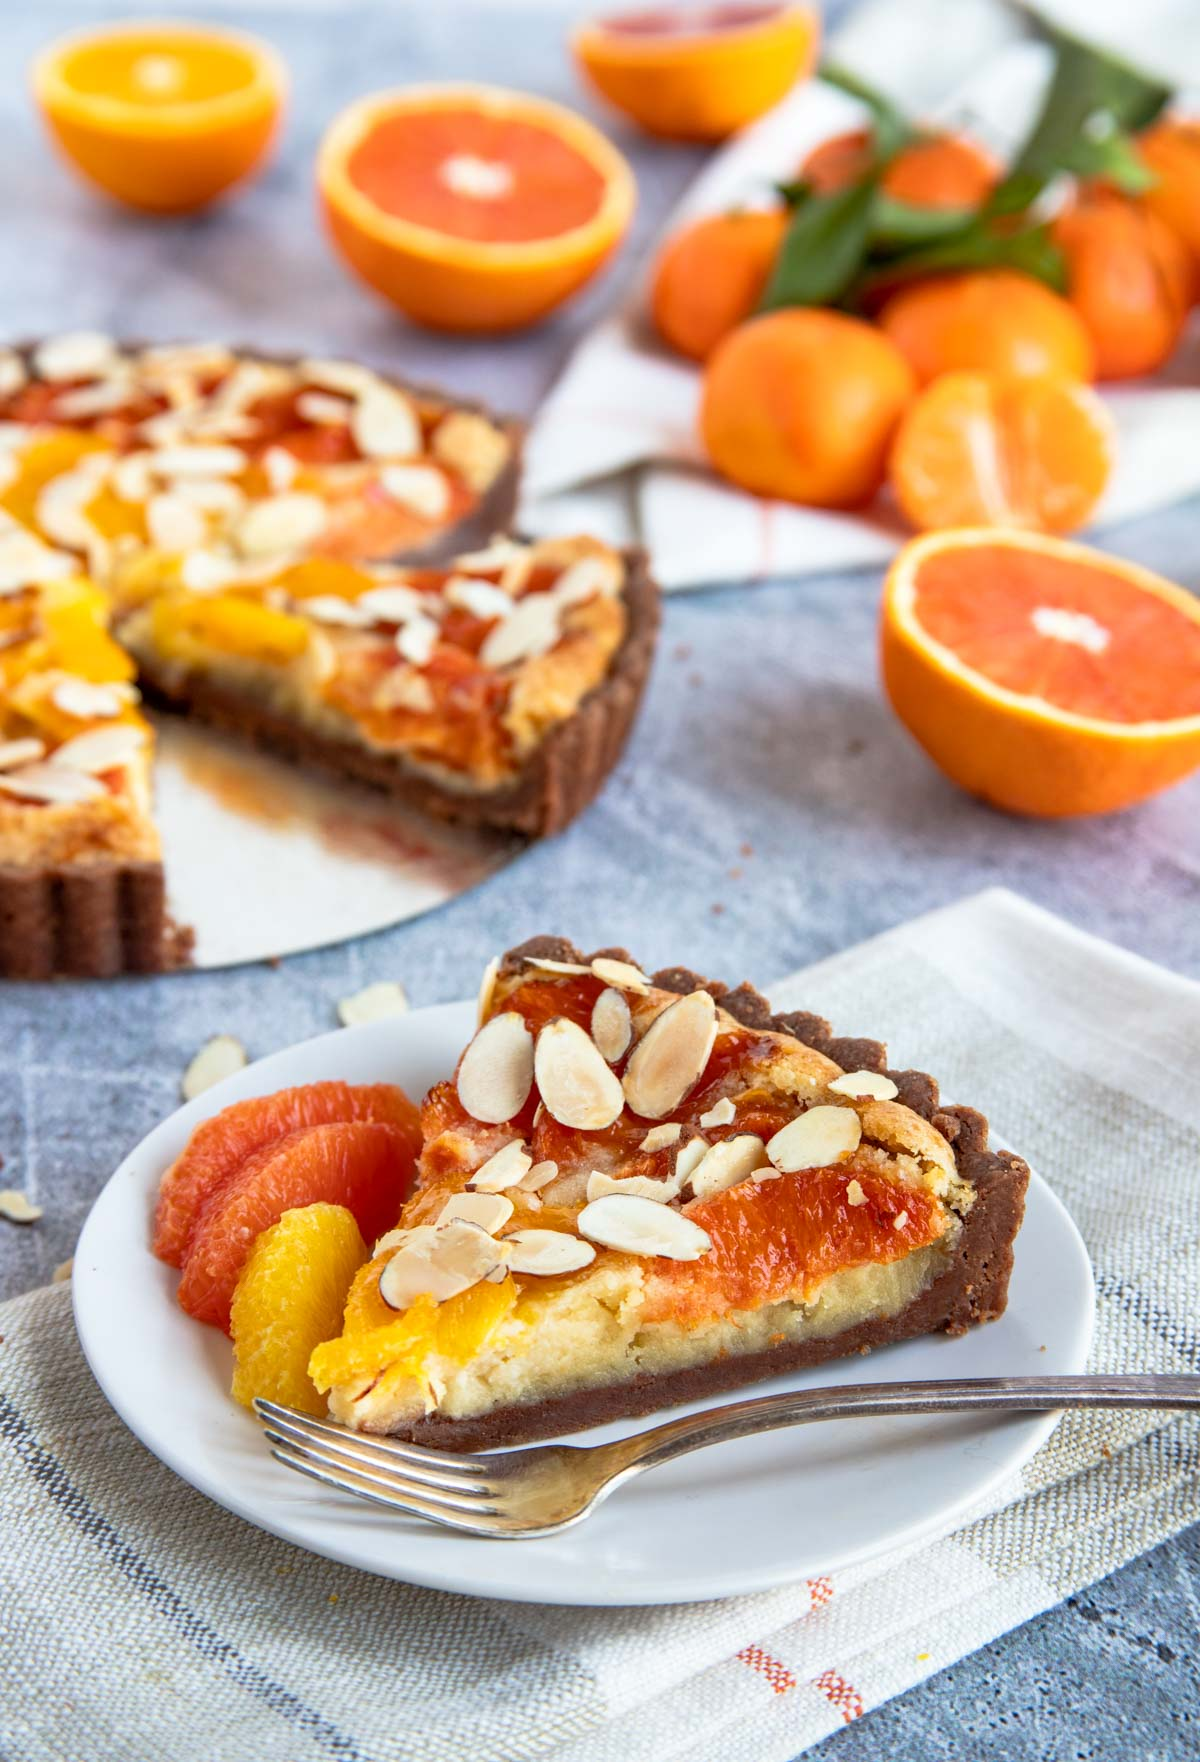 A slice of the orange and chocolate almond tart with fresh cut oranges and the tart in the background